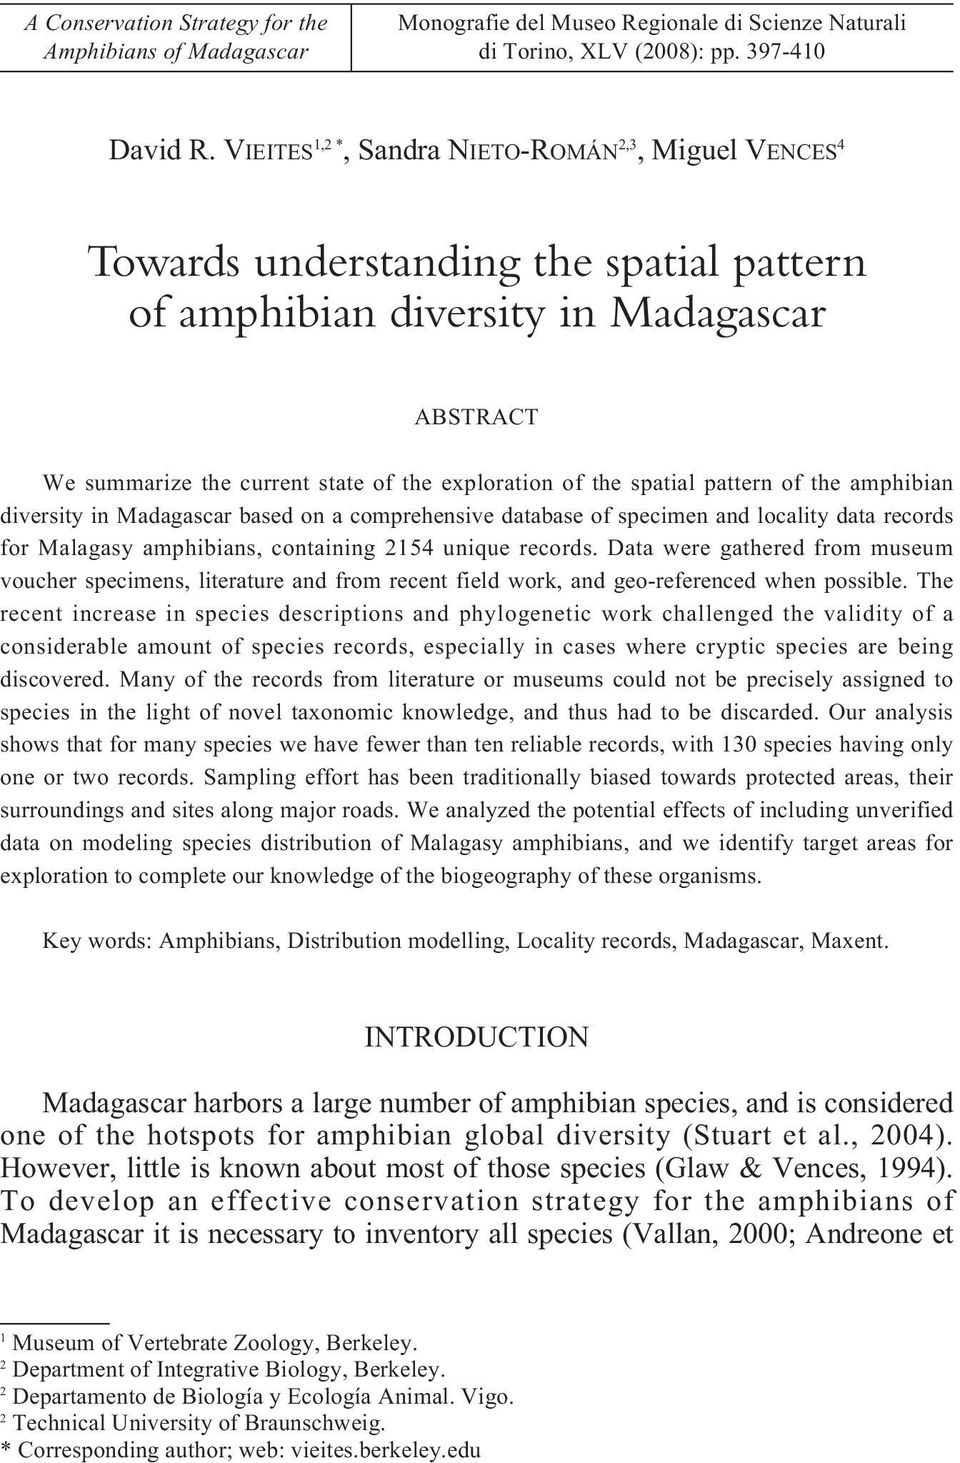 spatial pattern of the amphibian diversity in Madagascar based on a comprehensive database of specimen and locality data records for Malagasy amphibians, containing 2154 unique records.